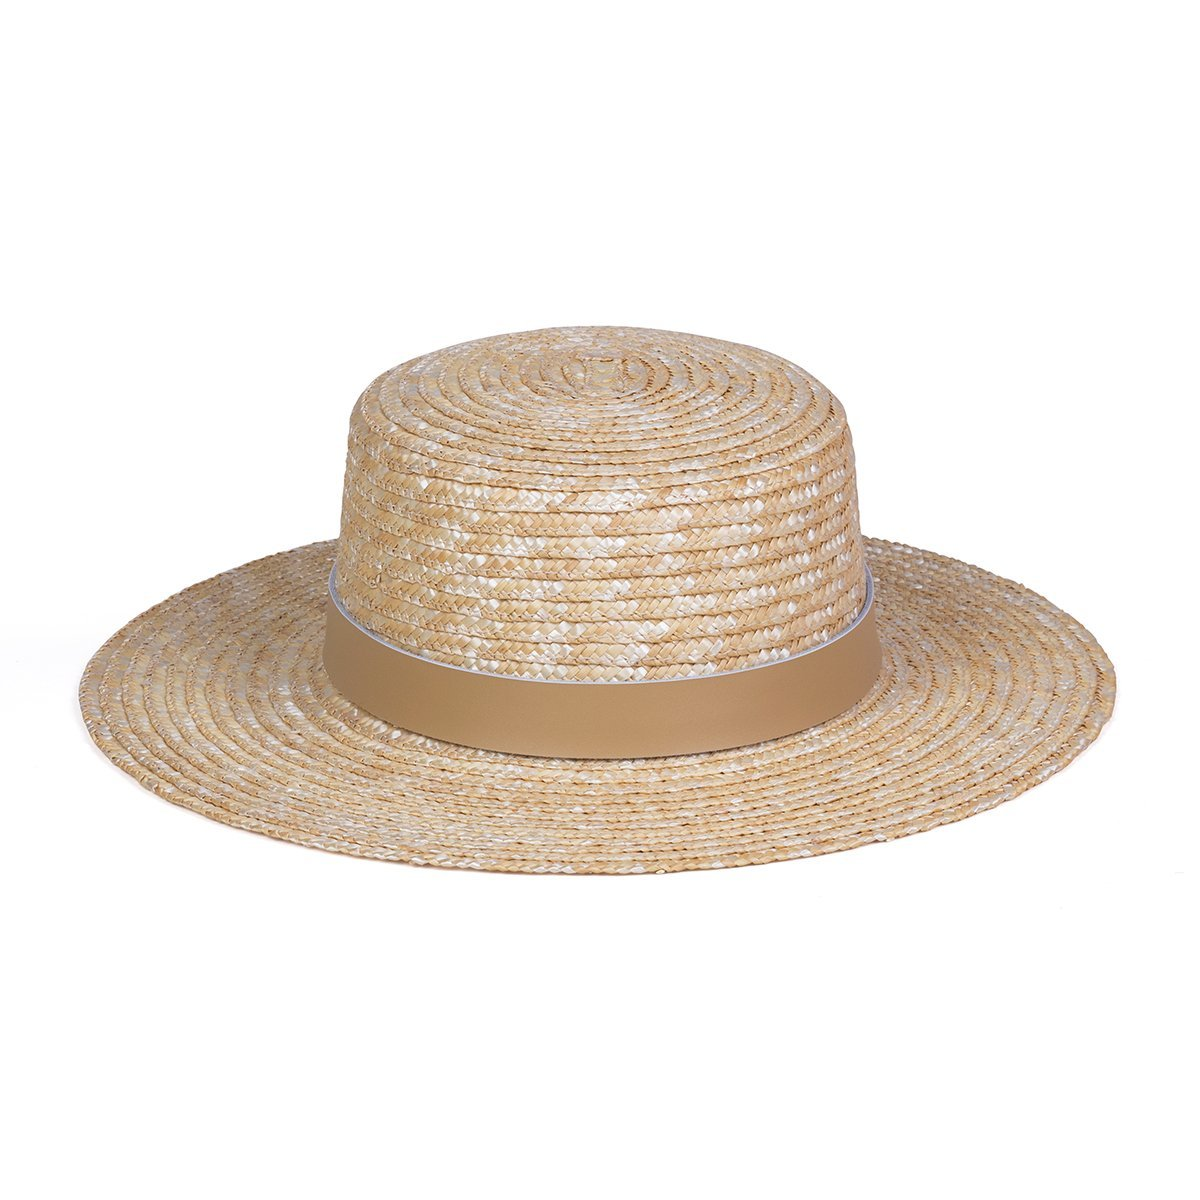 Lack of Color Women's Spencer Leather Banded Straw Boater Sun Hat (Fawn/Natural, Medium (57cm))